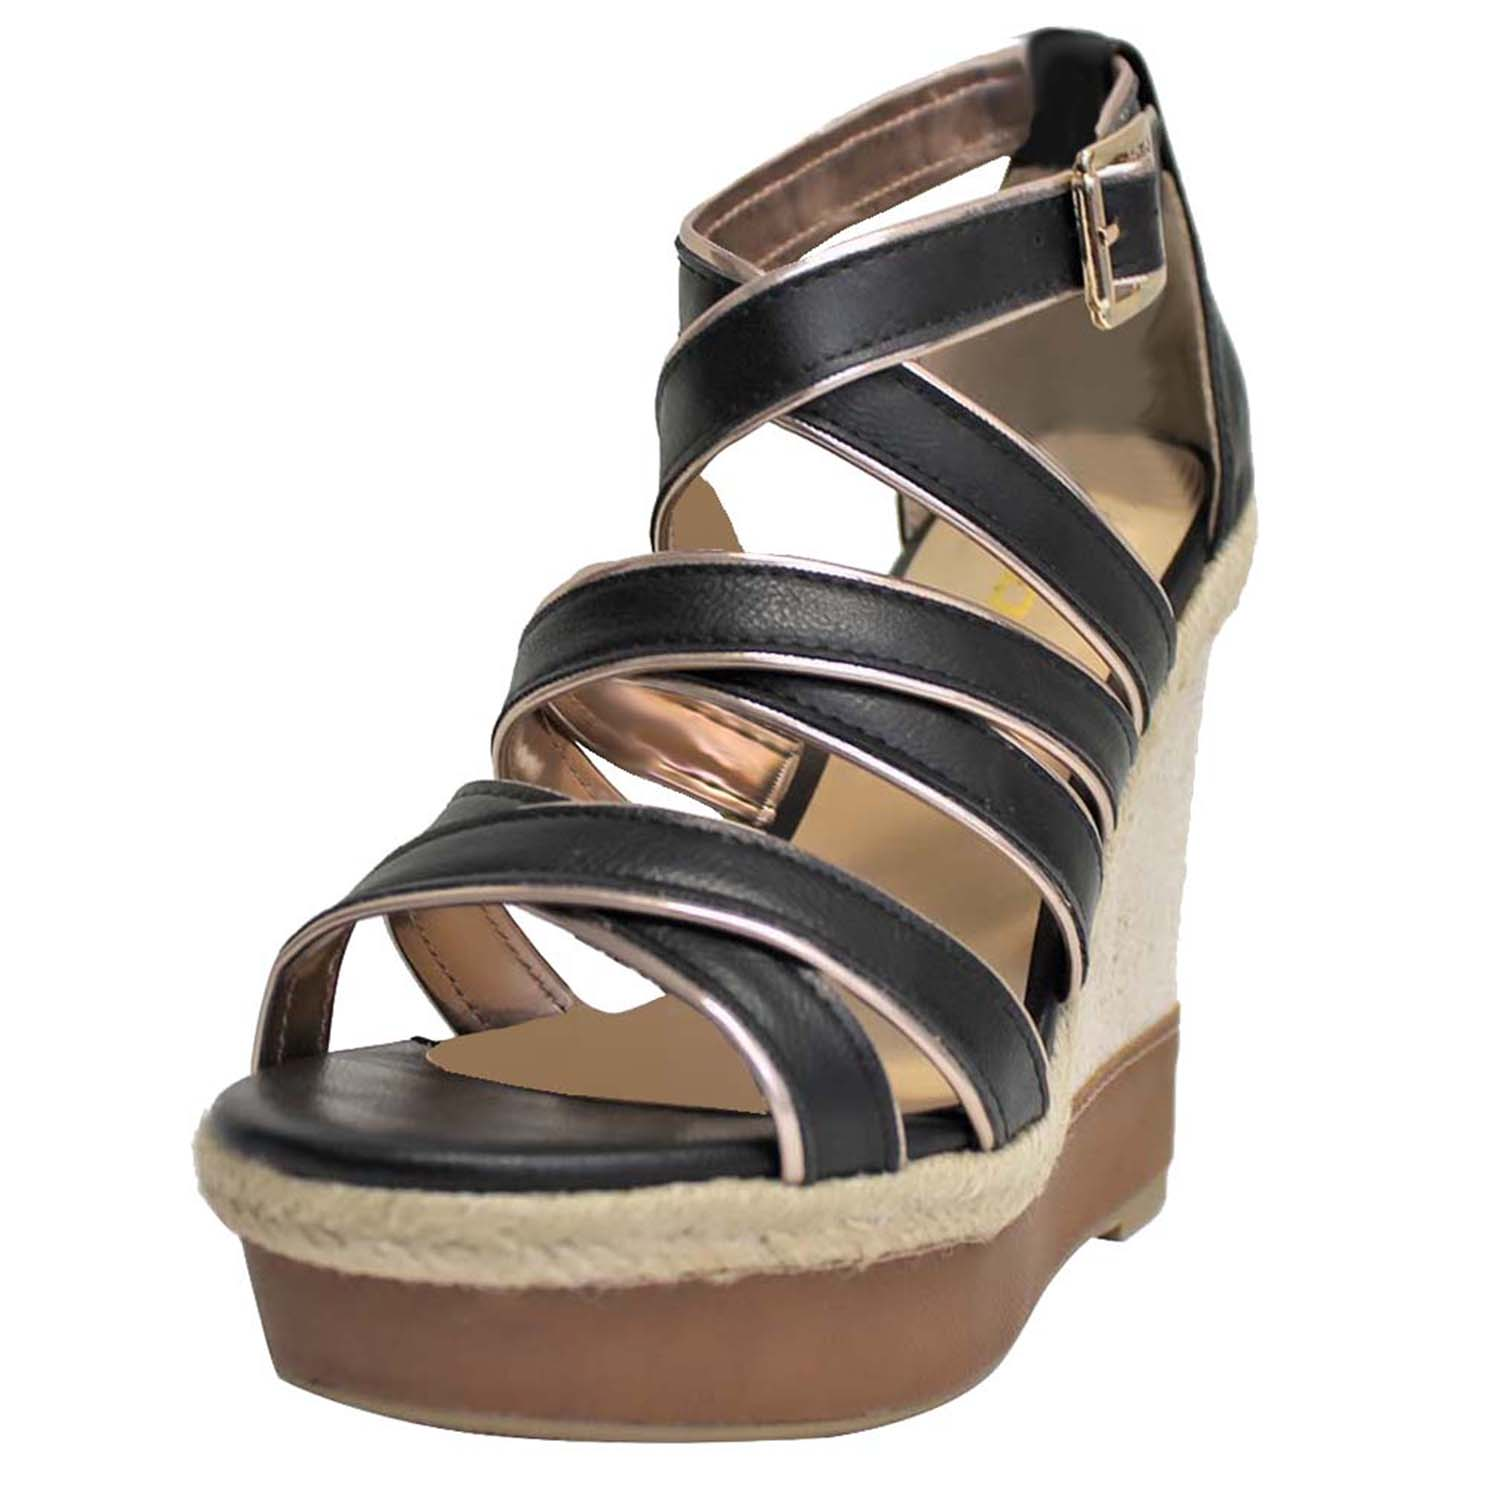 Strappy High Wedge Heels Sandals For Women